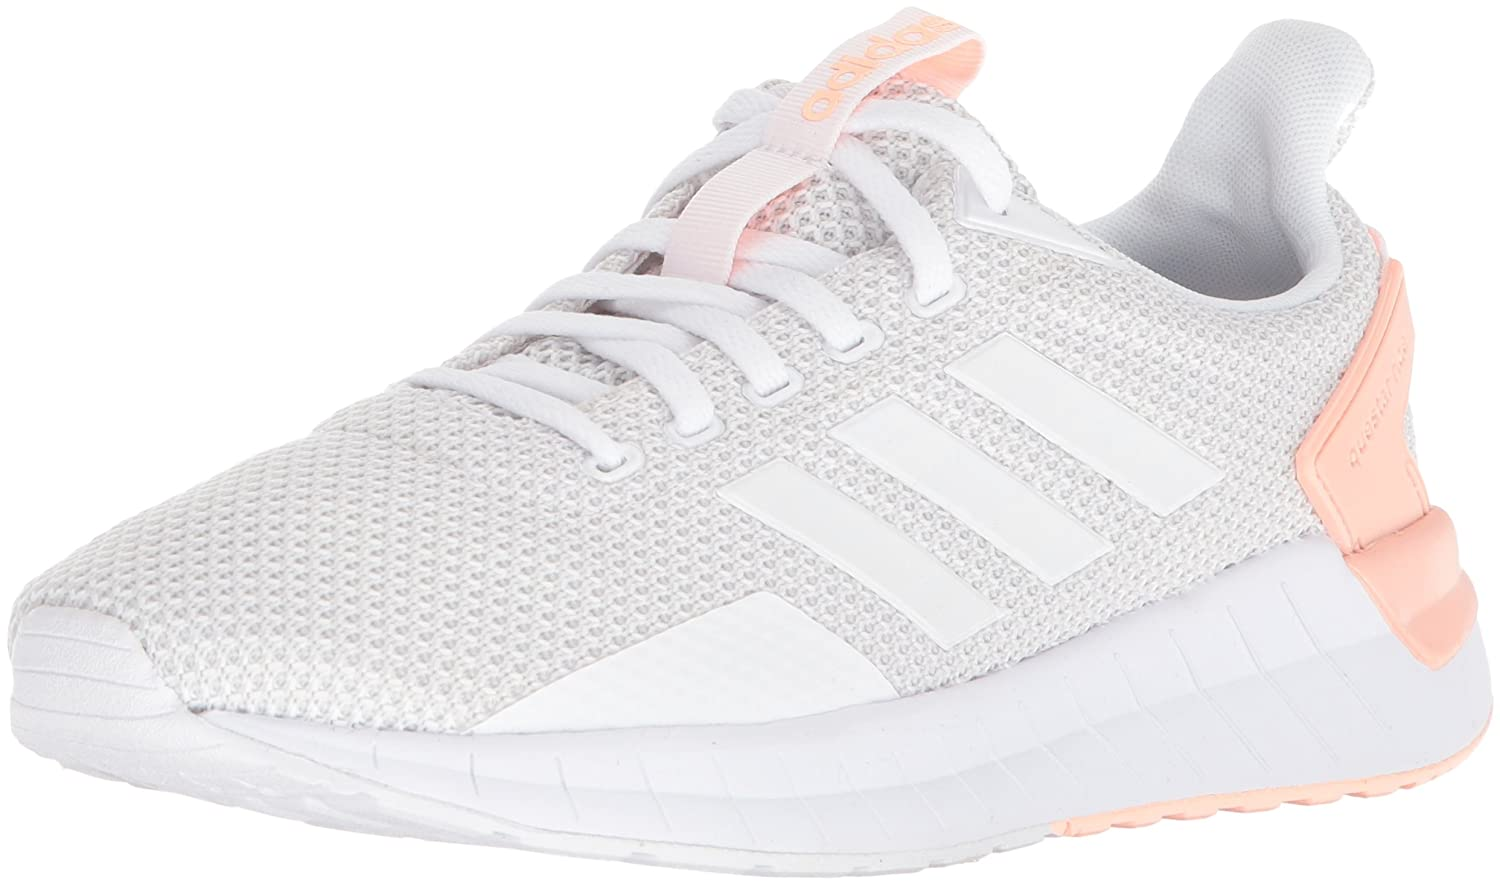 adidas Women's Questar Ride W Running Shoe B071Z87BKC 9 B(M) US|White/Grey One/Haze Coral